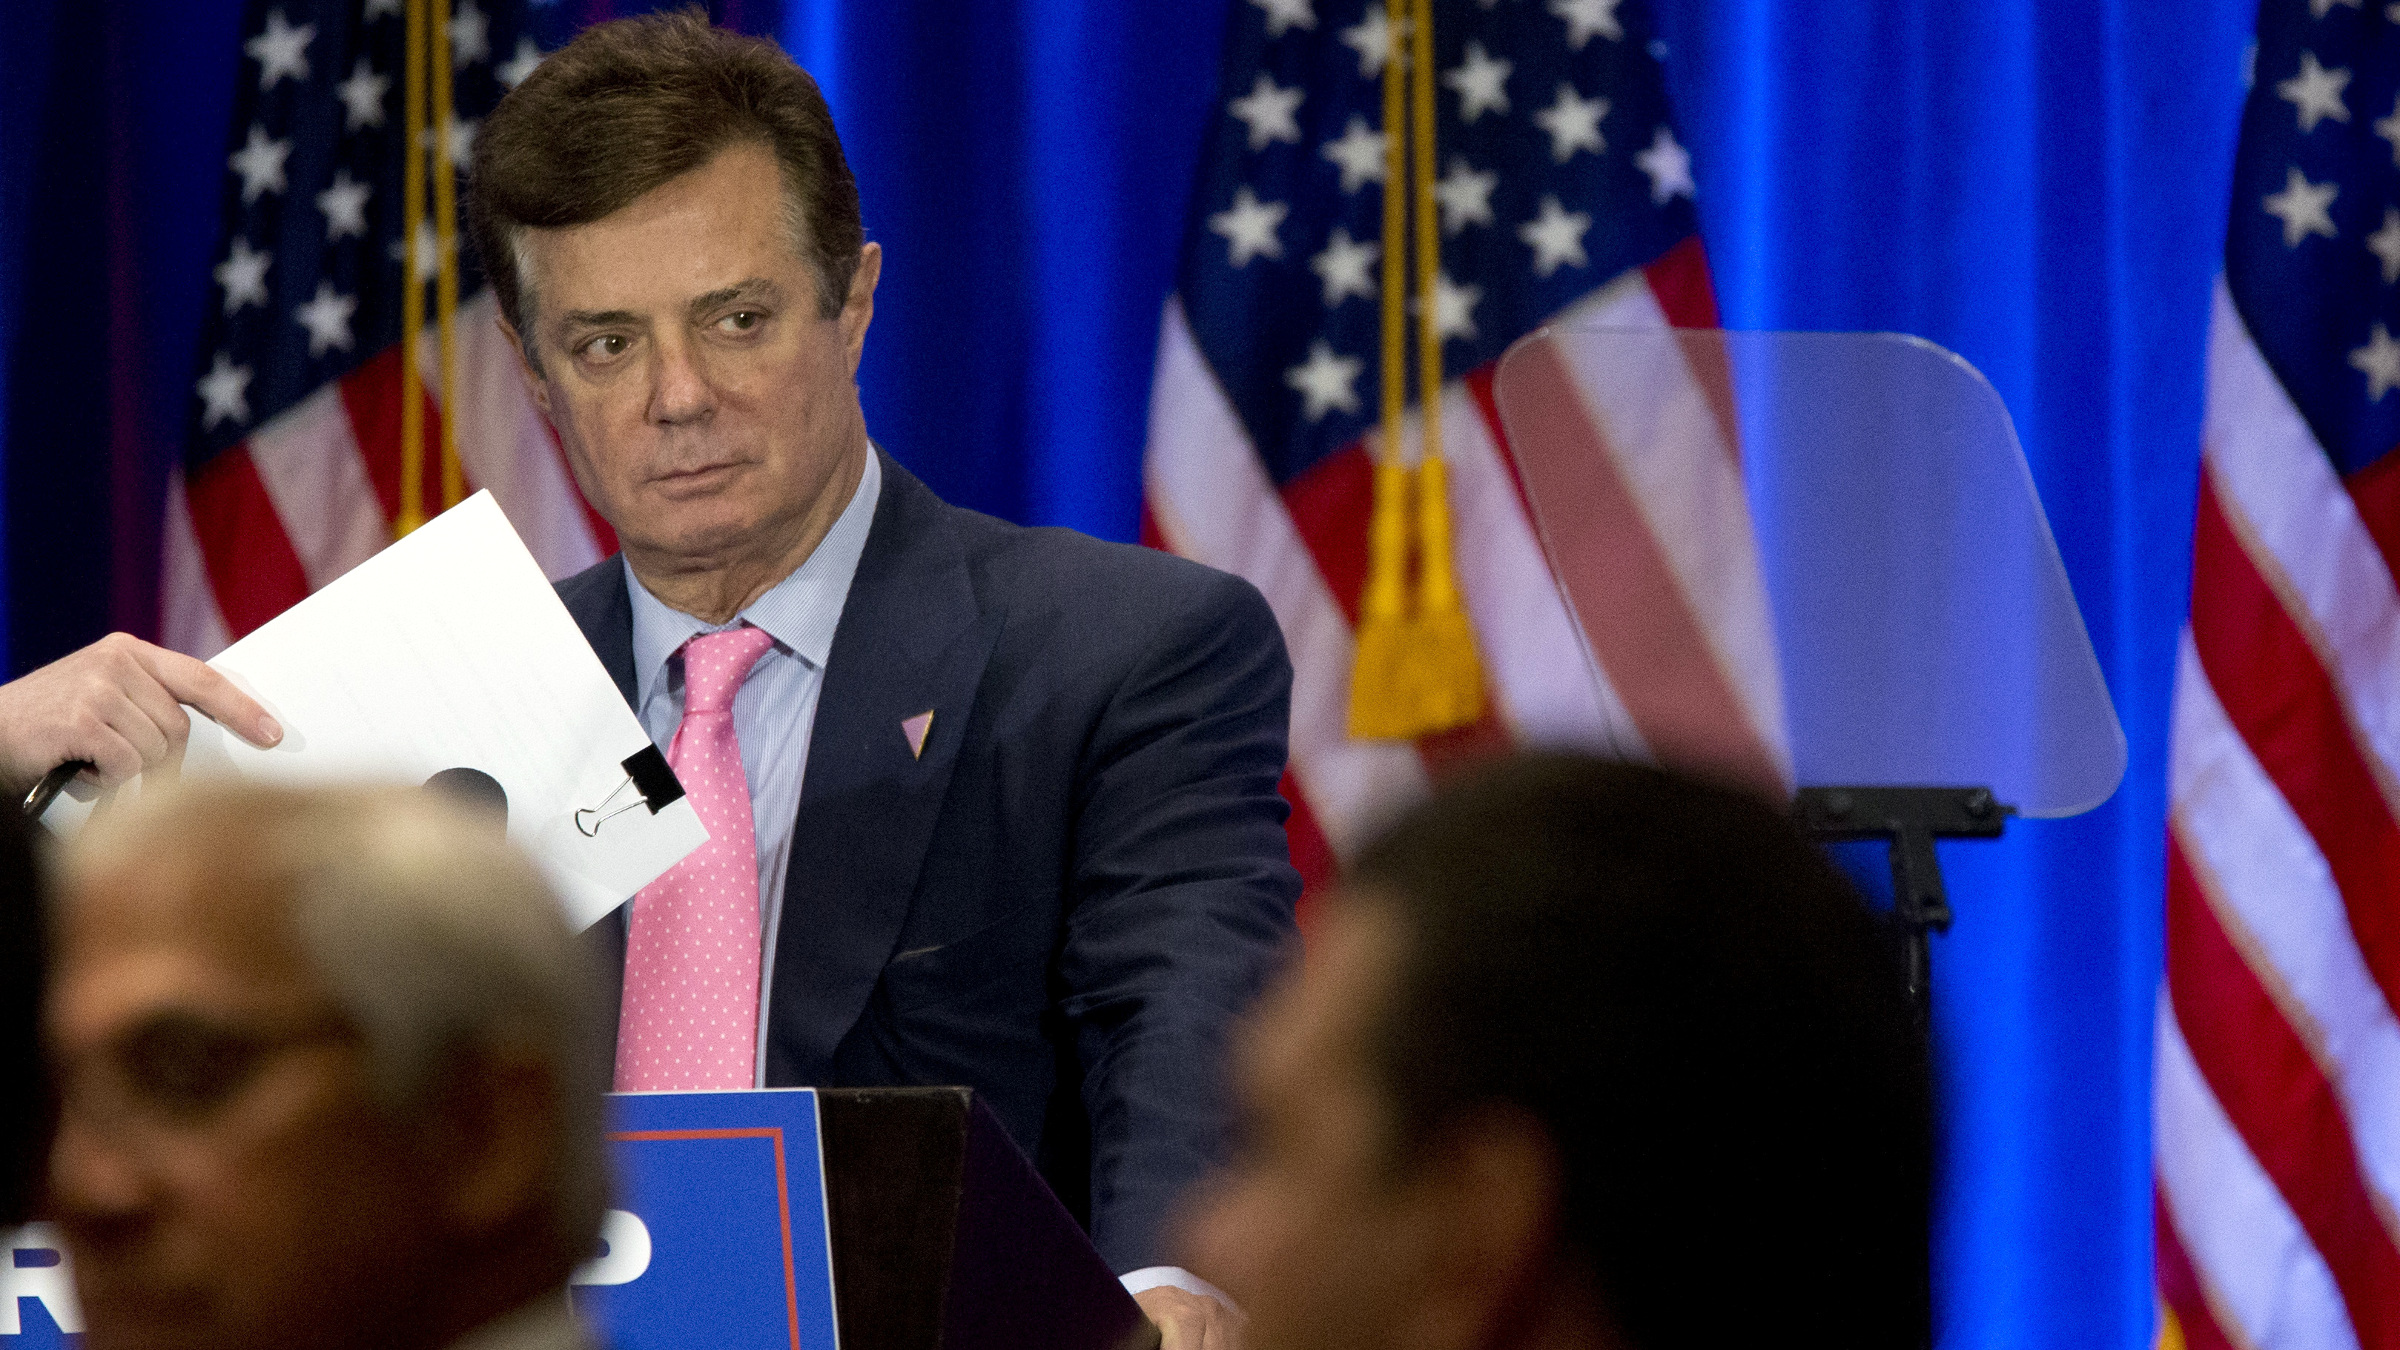 In this June 22, 2016 photo Paul Manafort appears on stage ahead of Republican presidential candidate Donald Trump, Wednesday, June 22, 2016, in New York.